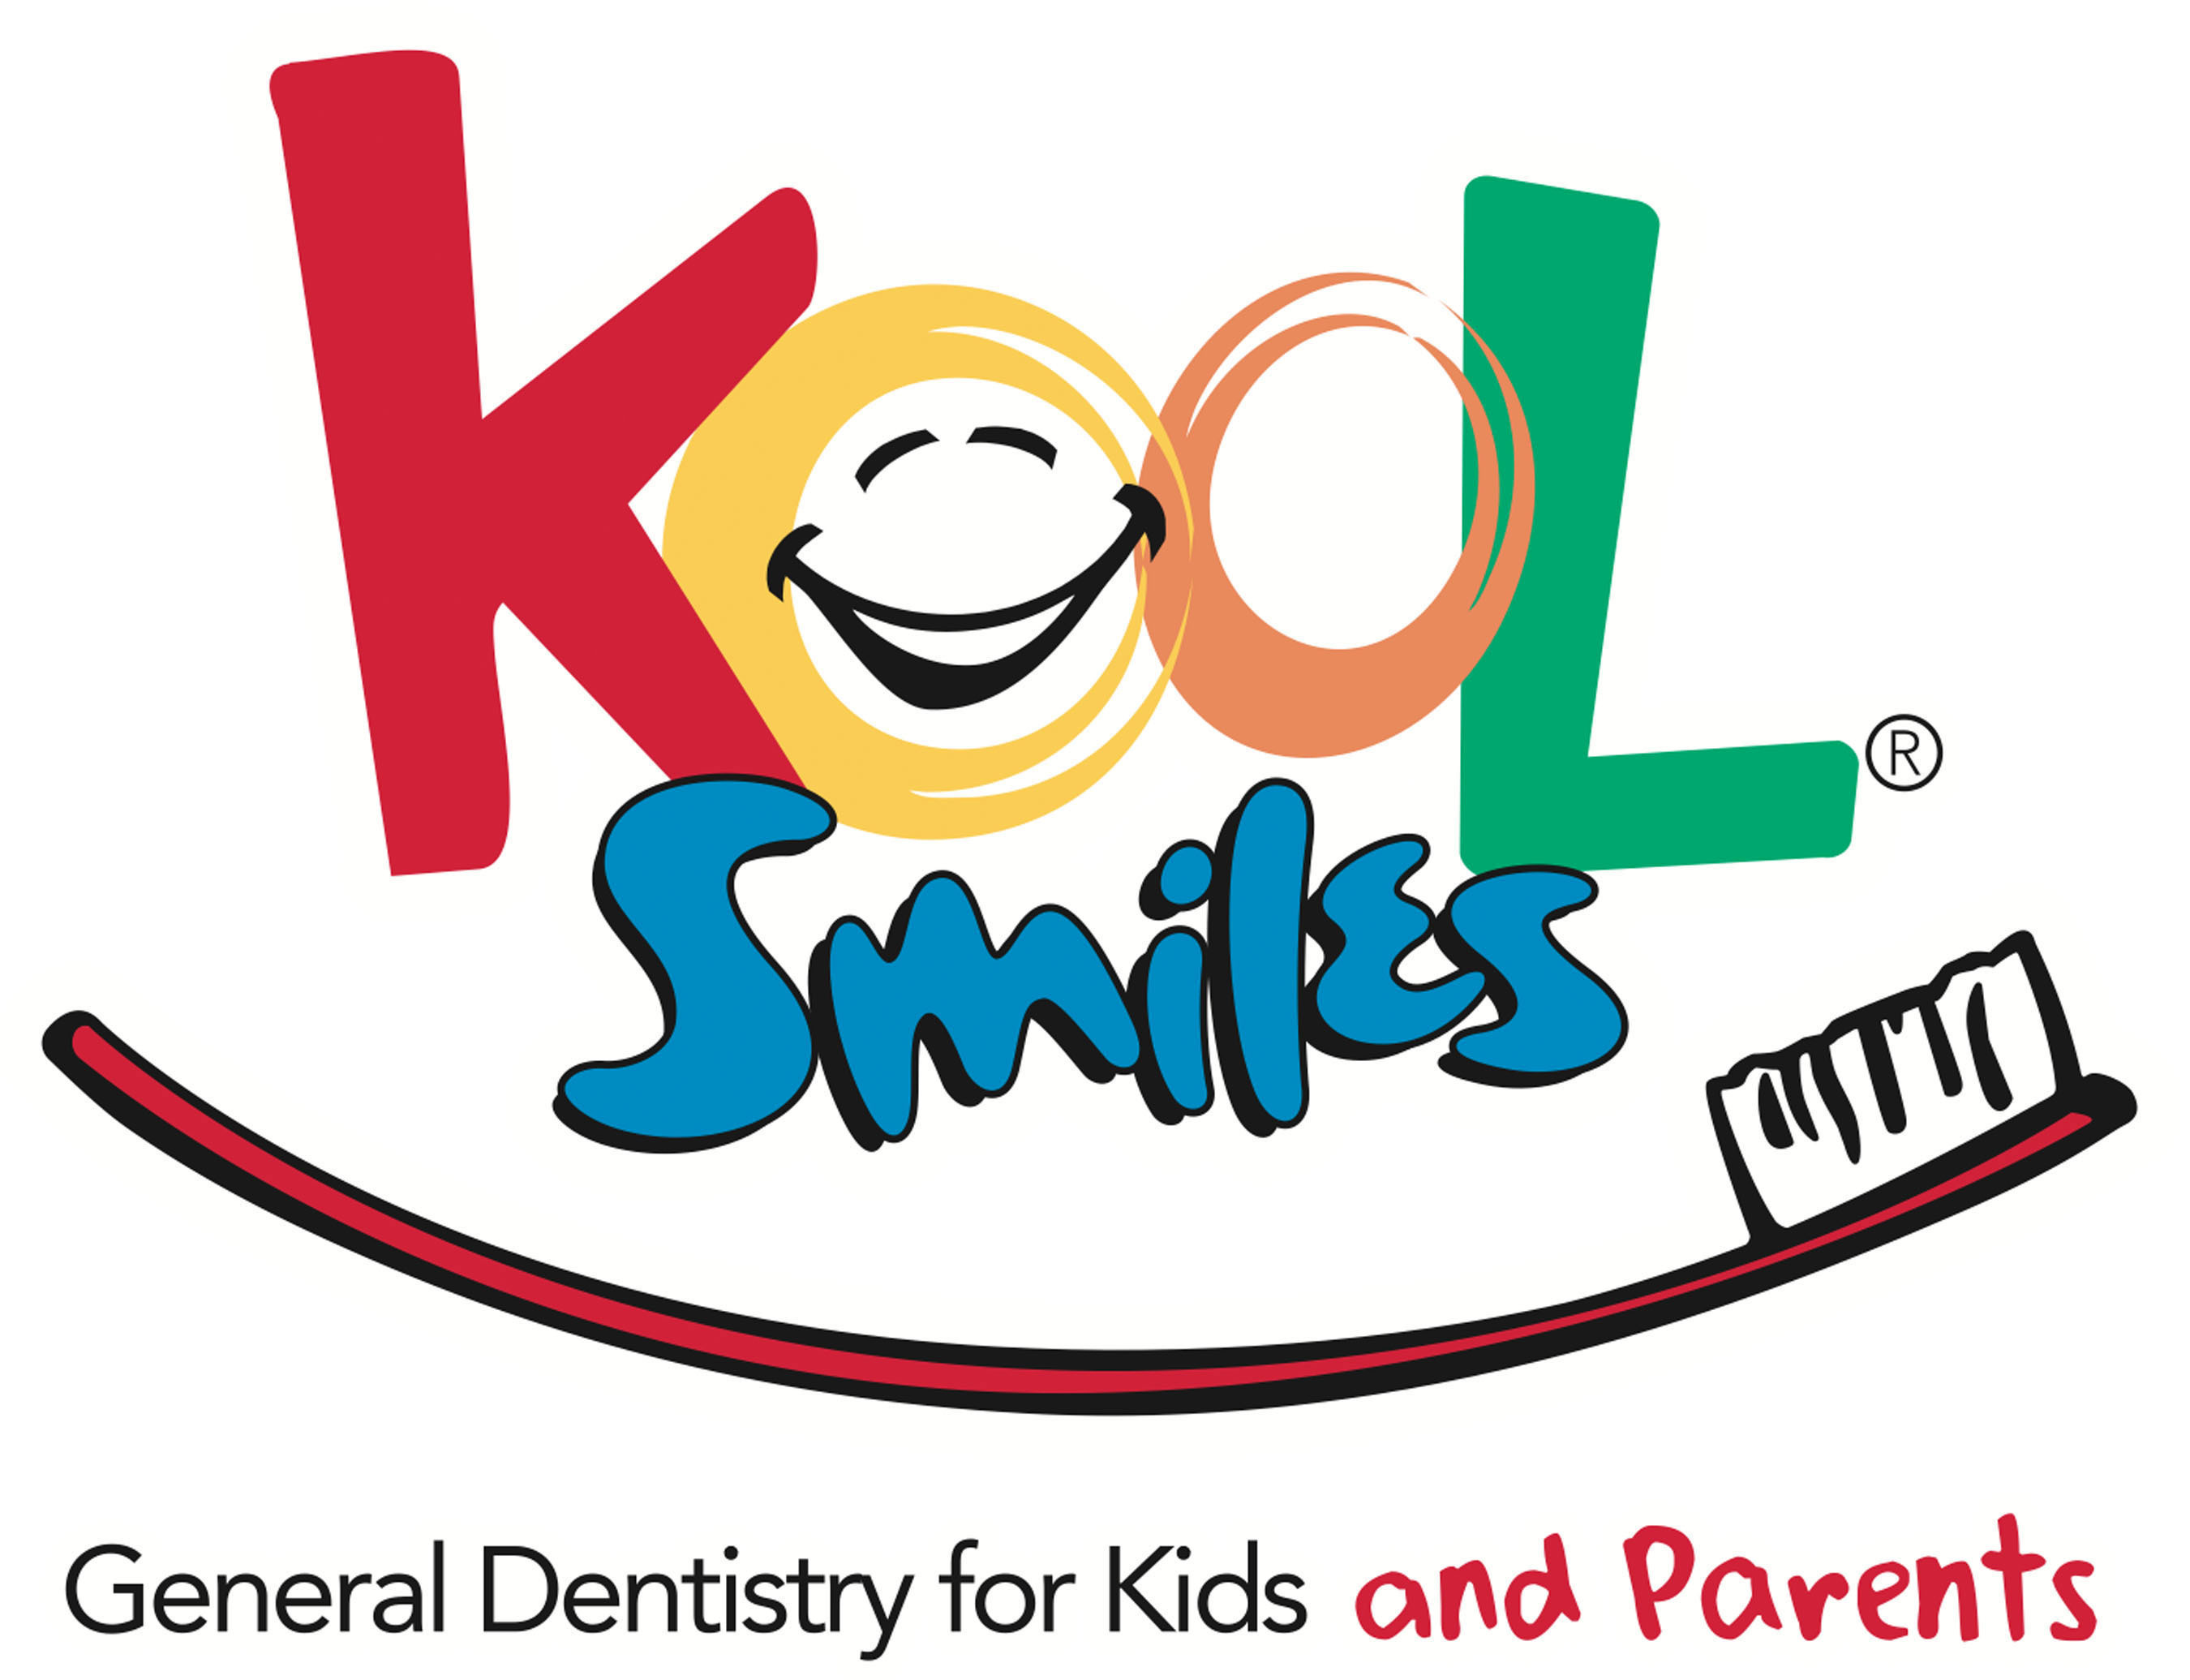 Kool Smiles is a general dentist for kids and their family.